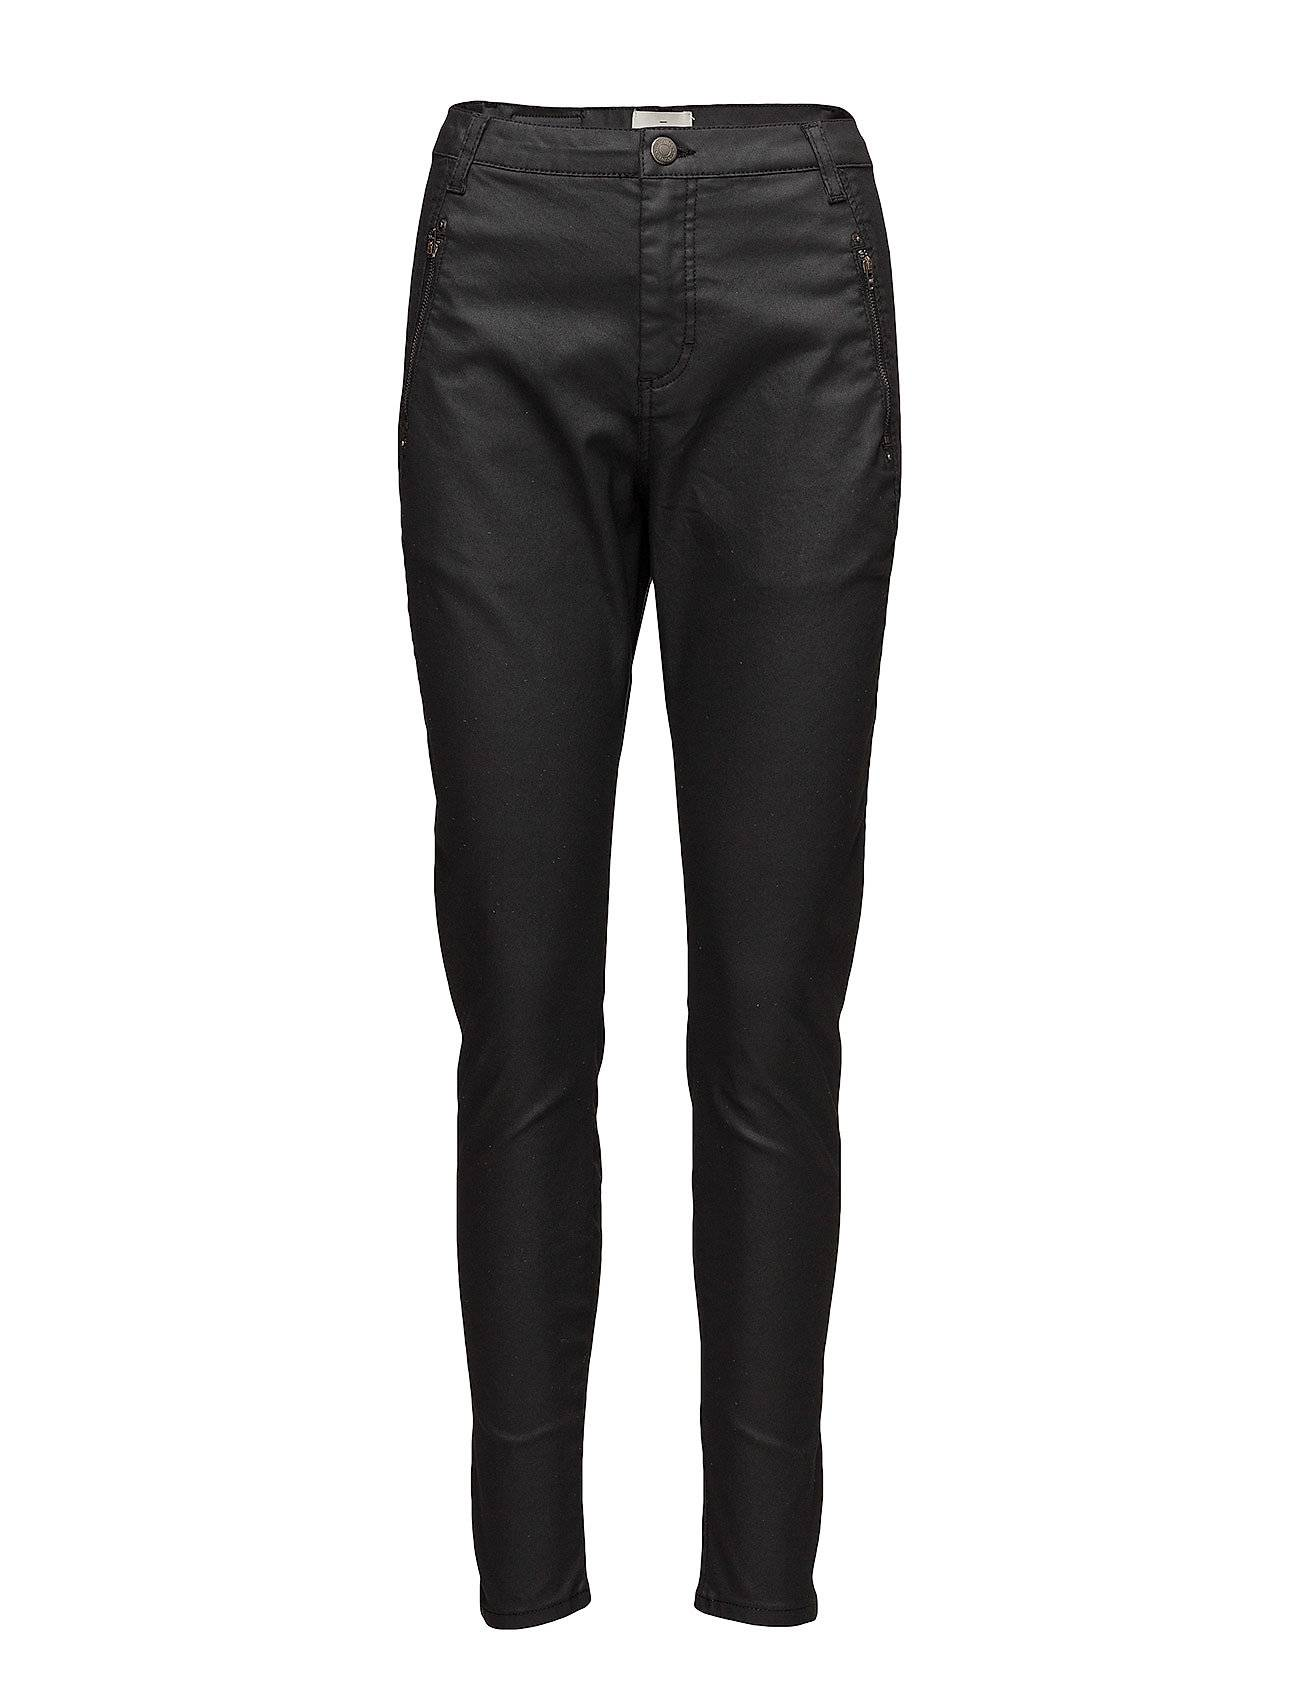 FIVEUNITS Jolie 374 Drifter, Black Coated, Pants